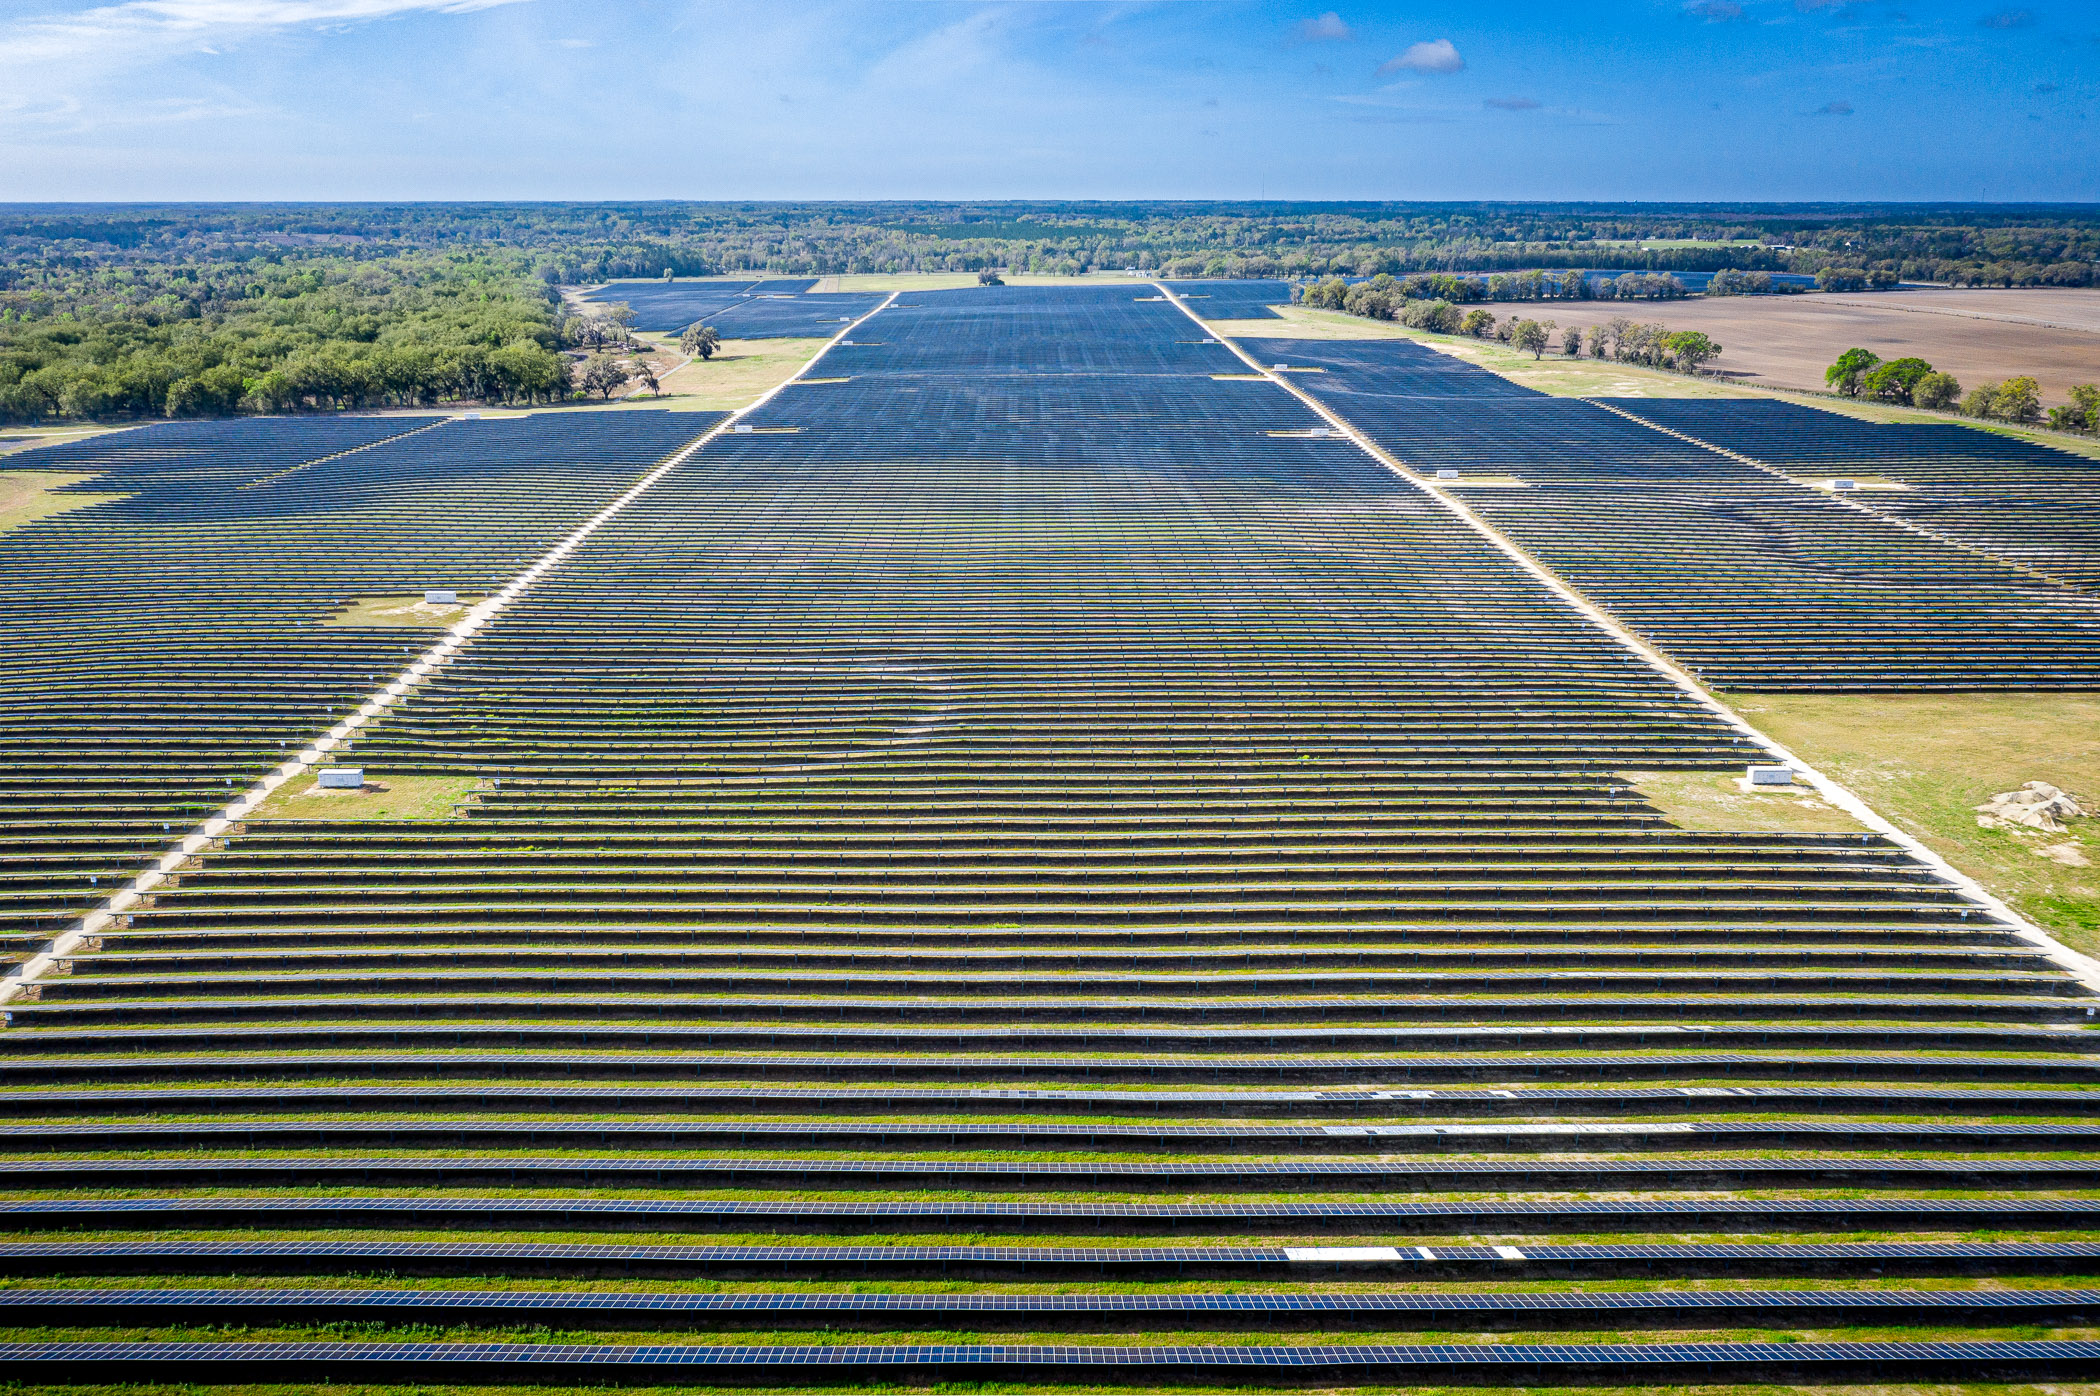 Wide drone view of Solar Farm in Florida